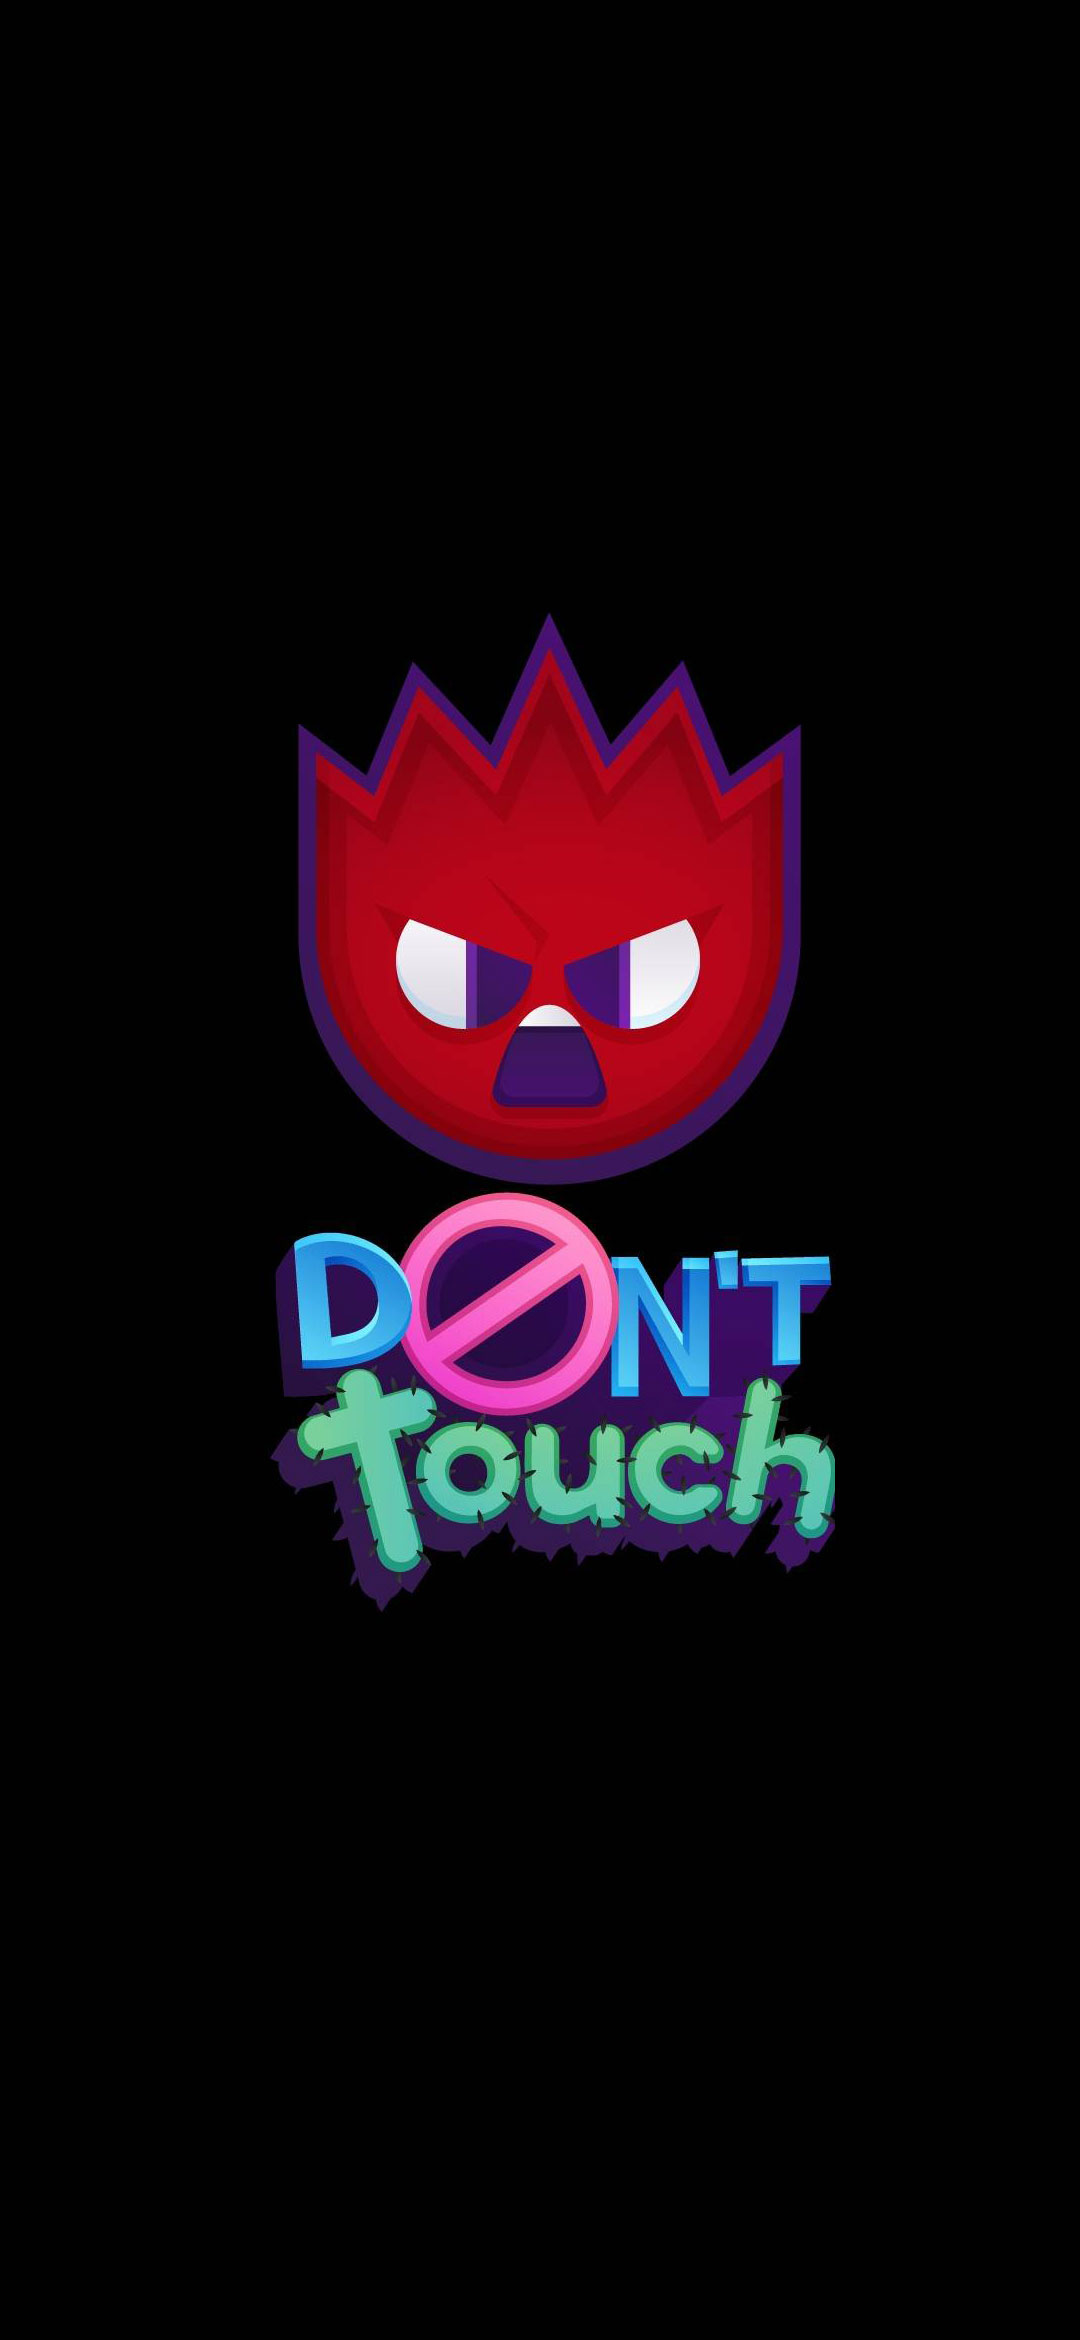 Dont Touch Phone Wallpaper - Illustration , HD Wallpaper & Backgrounds